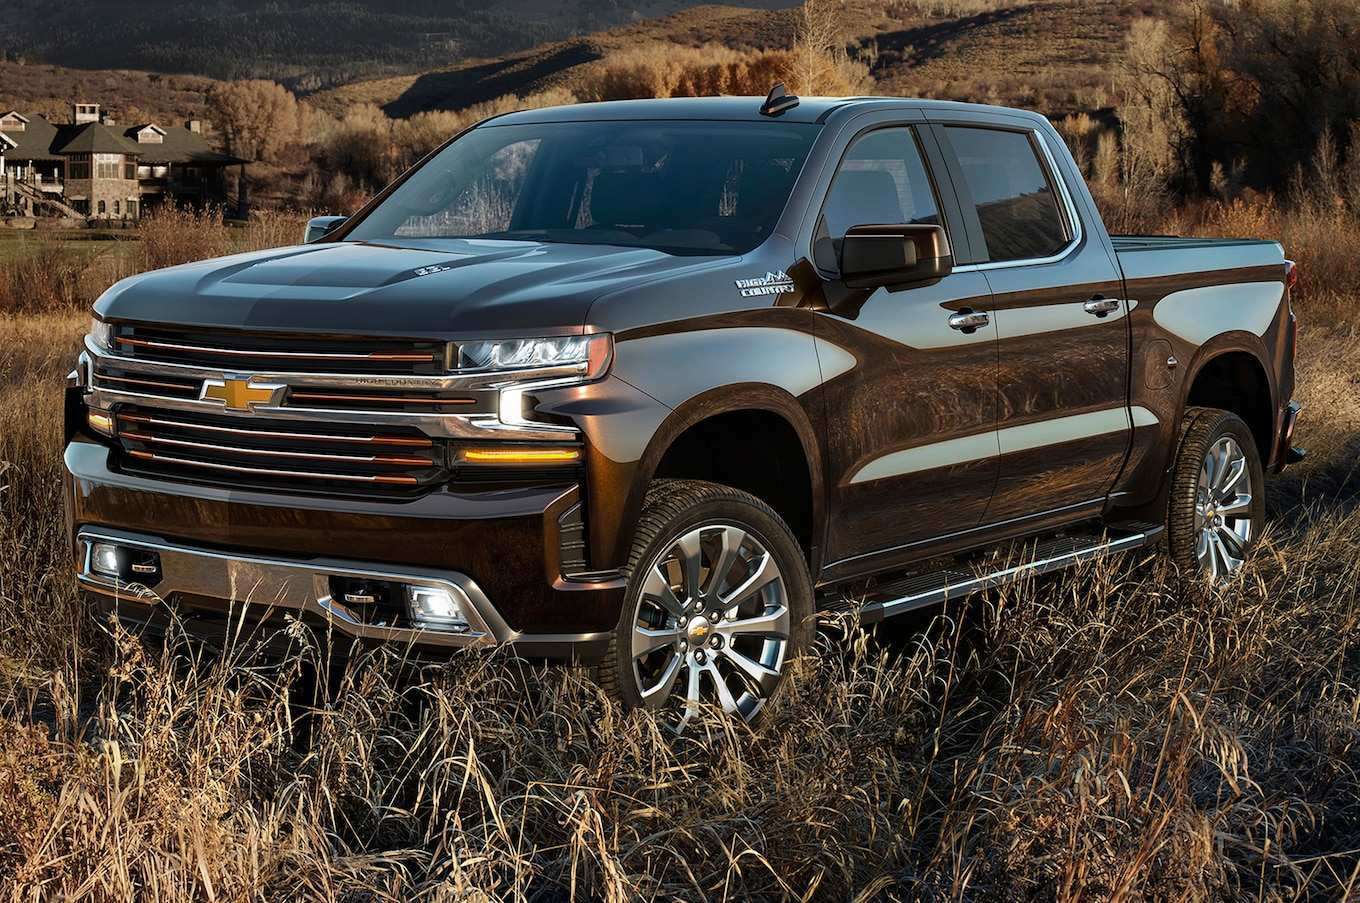 93 The Best 2019 Chevy Silverado 1500 Redesign And Concept